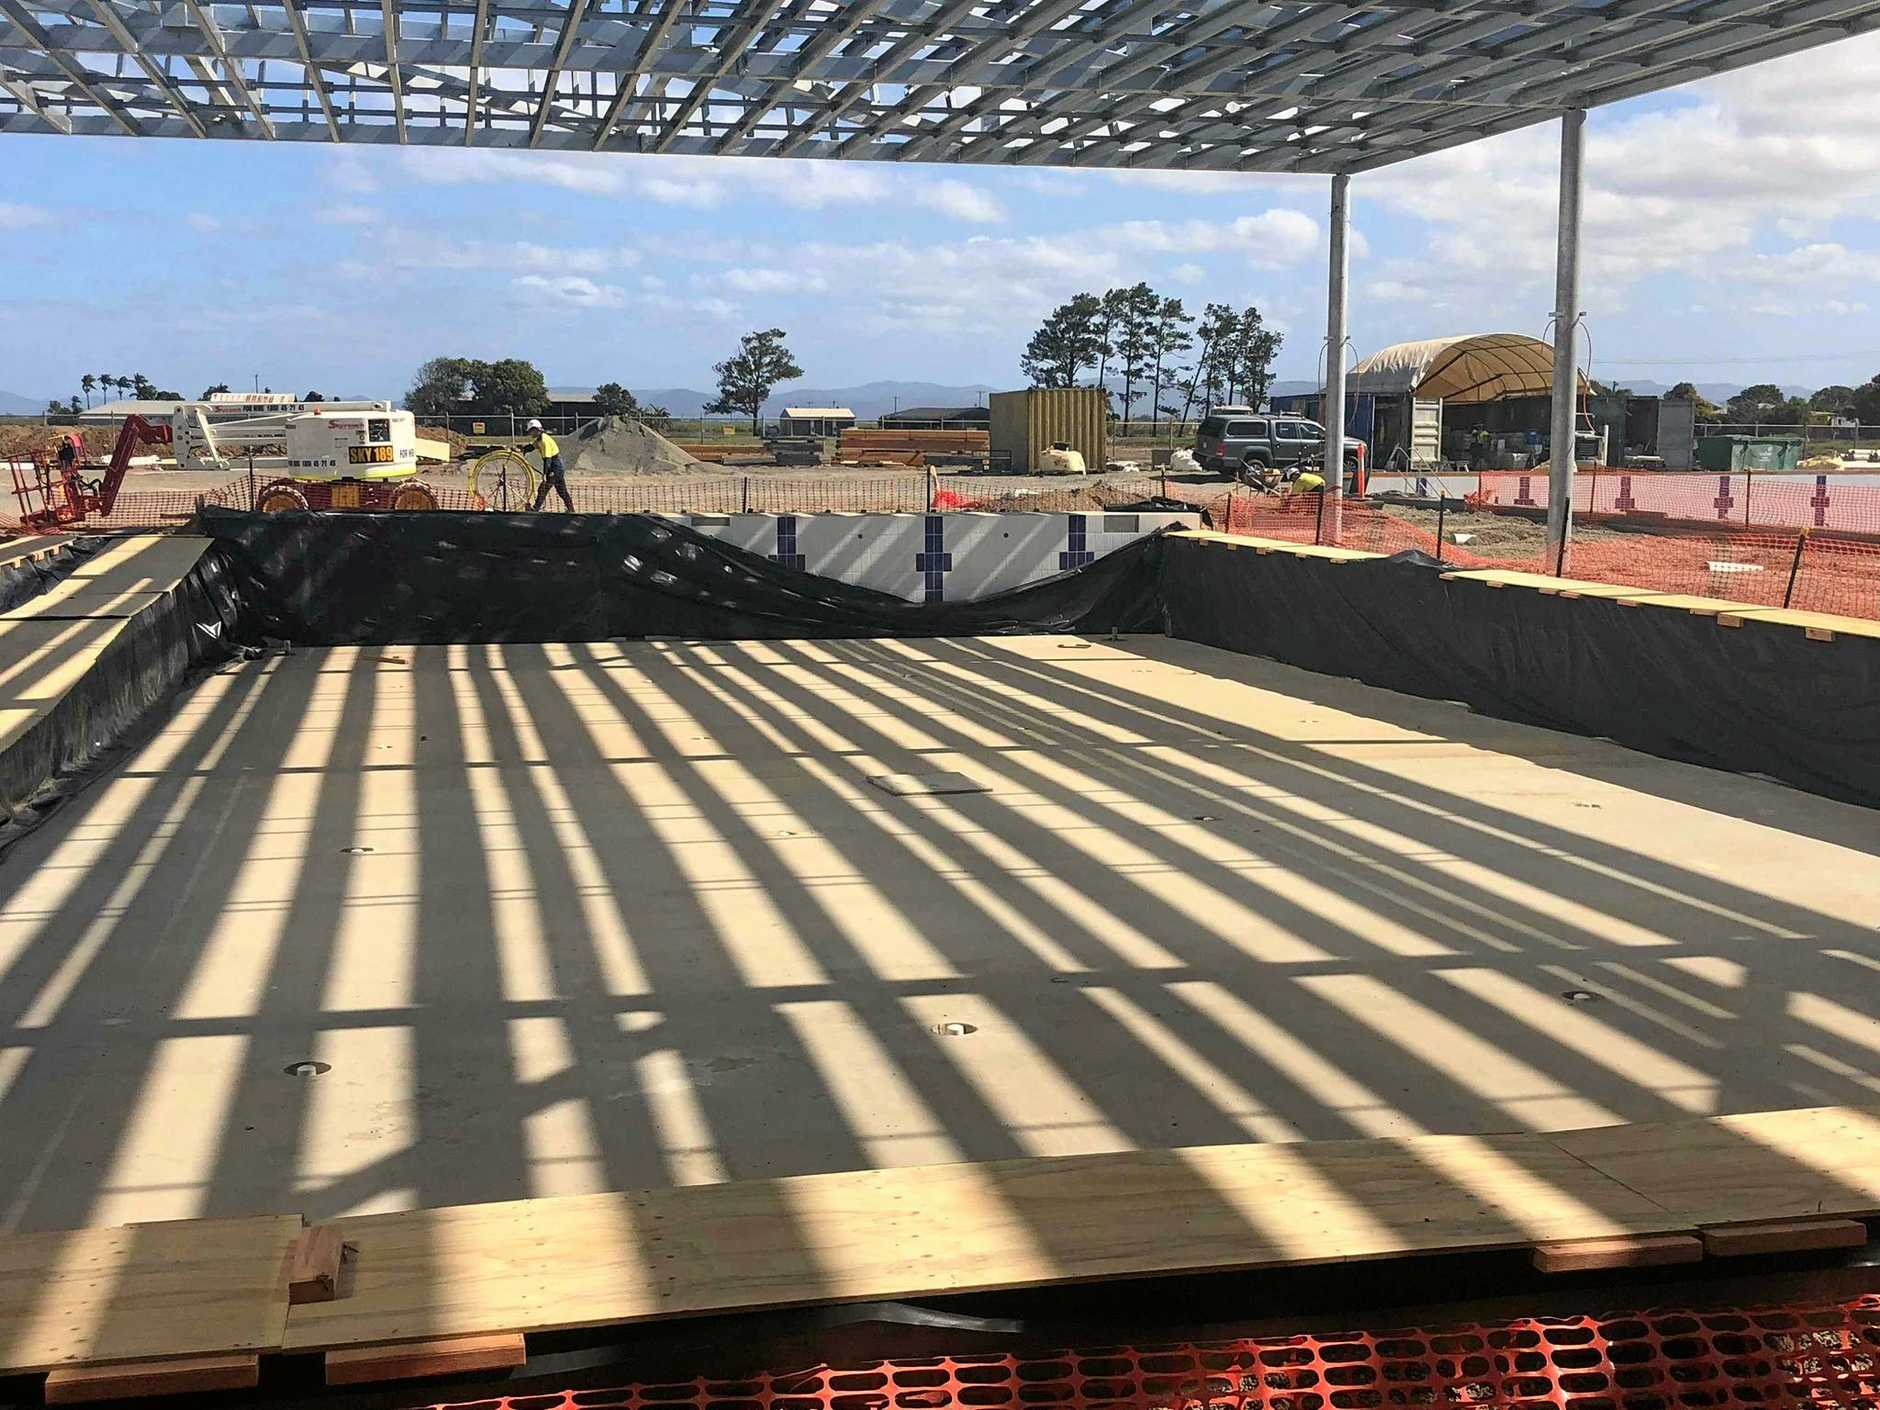 The Mackay Regional Sports Precinct project is running ahead of schedule. The precinct will be located next to the CQUniversity Ooralea campus on Boundary Road.